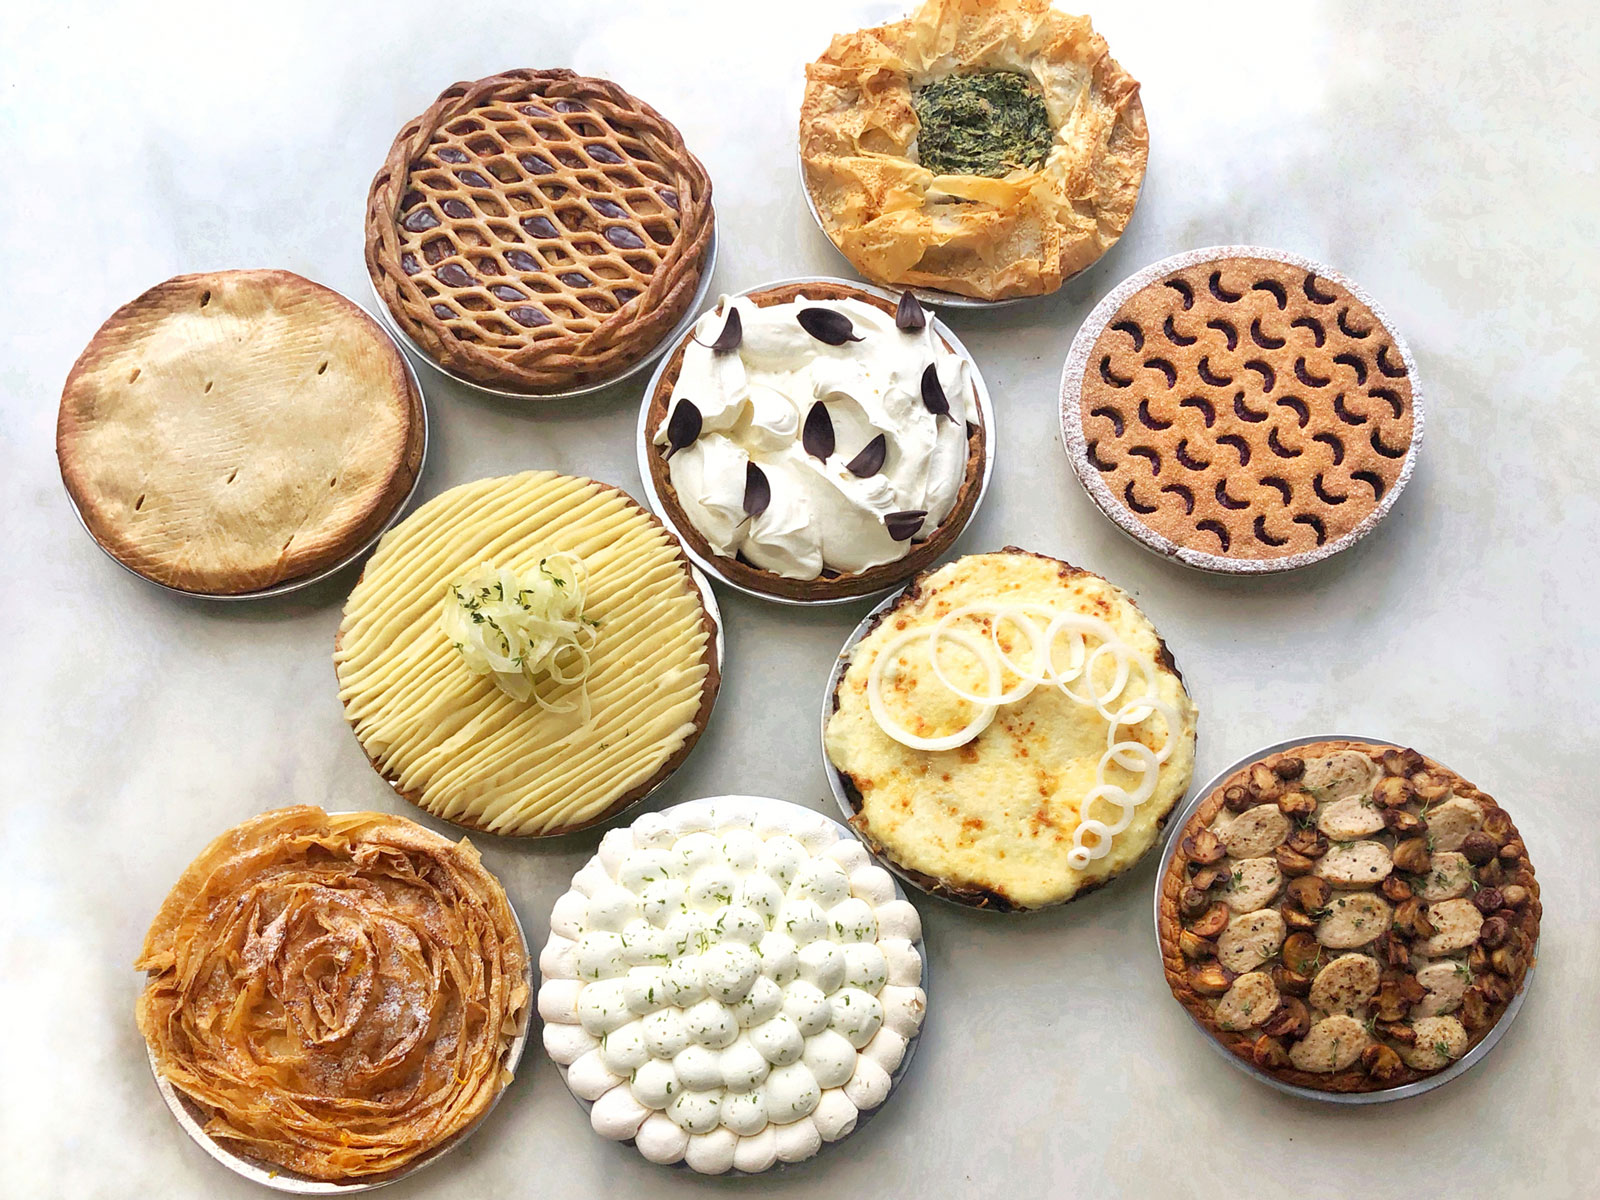 Dominique Ansel's 'Pie Night' Extravaganza Is Back—Here's How to Get Tickets